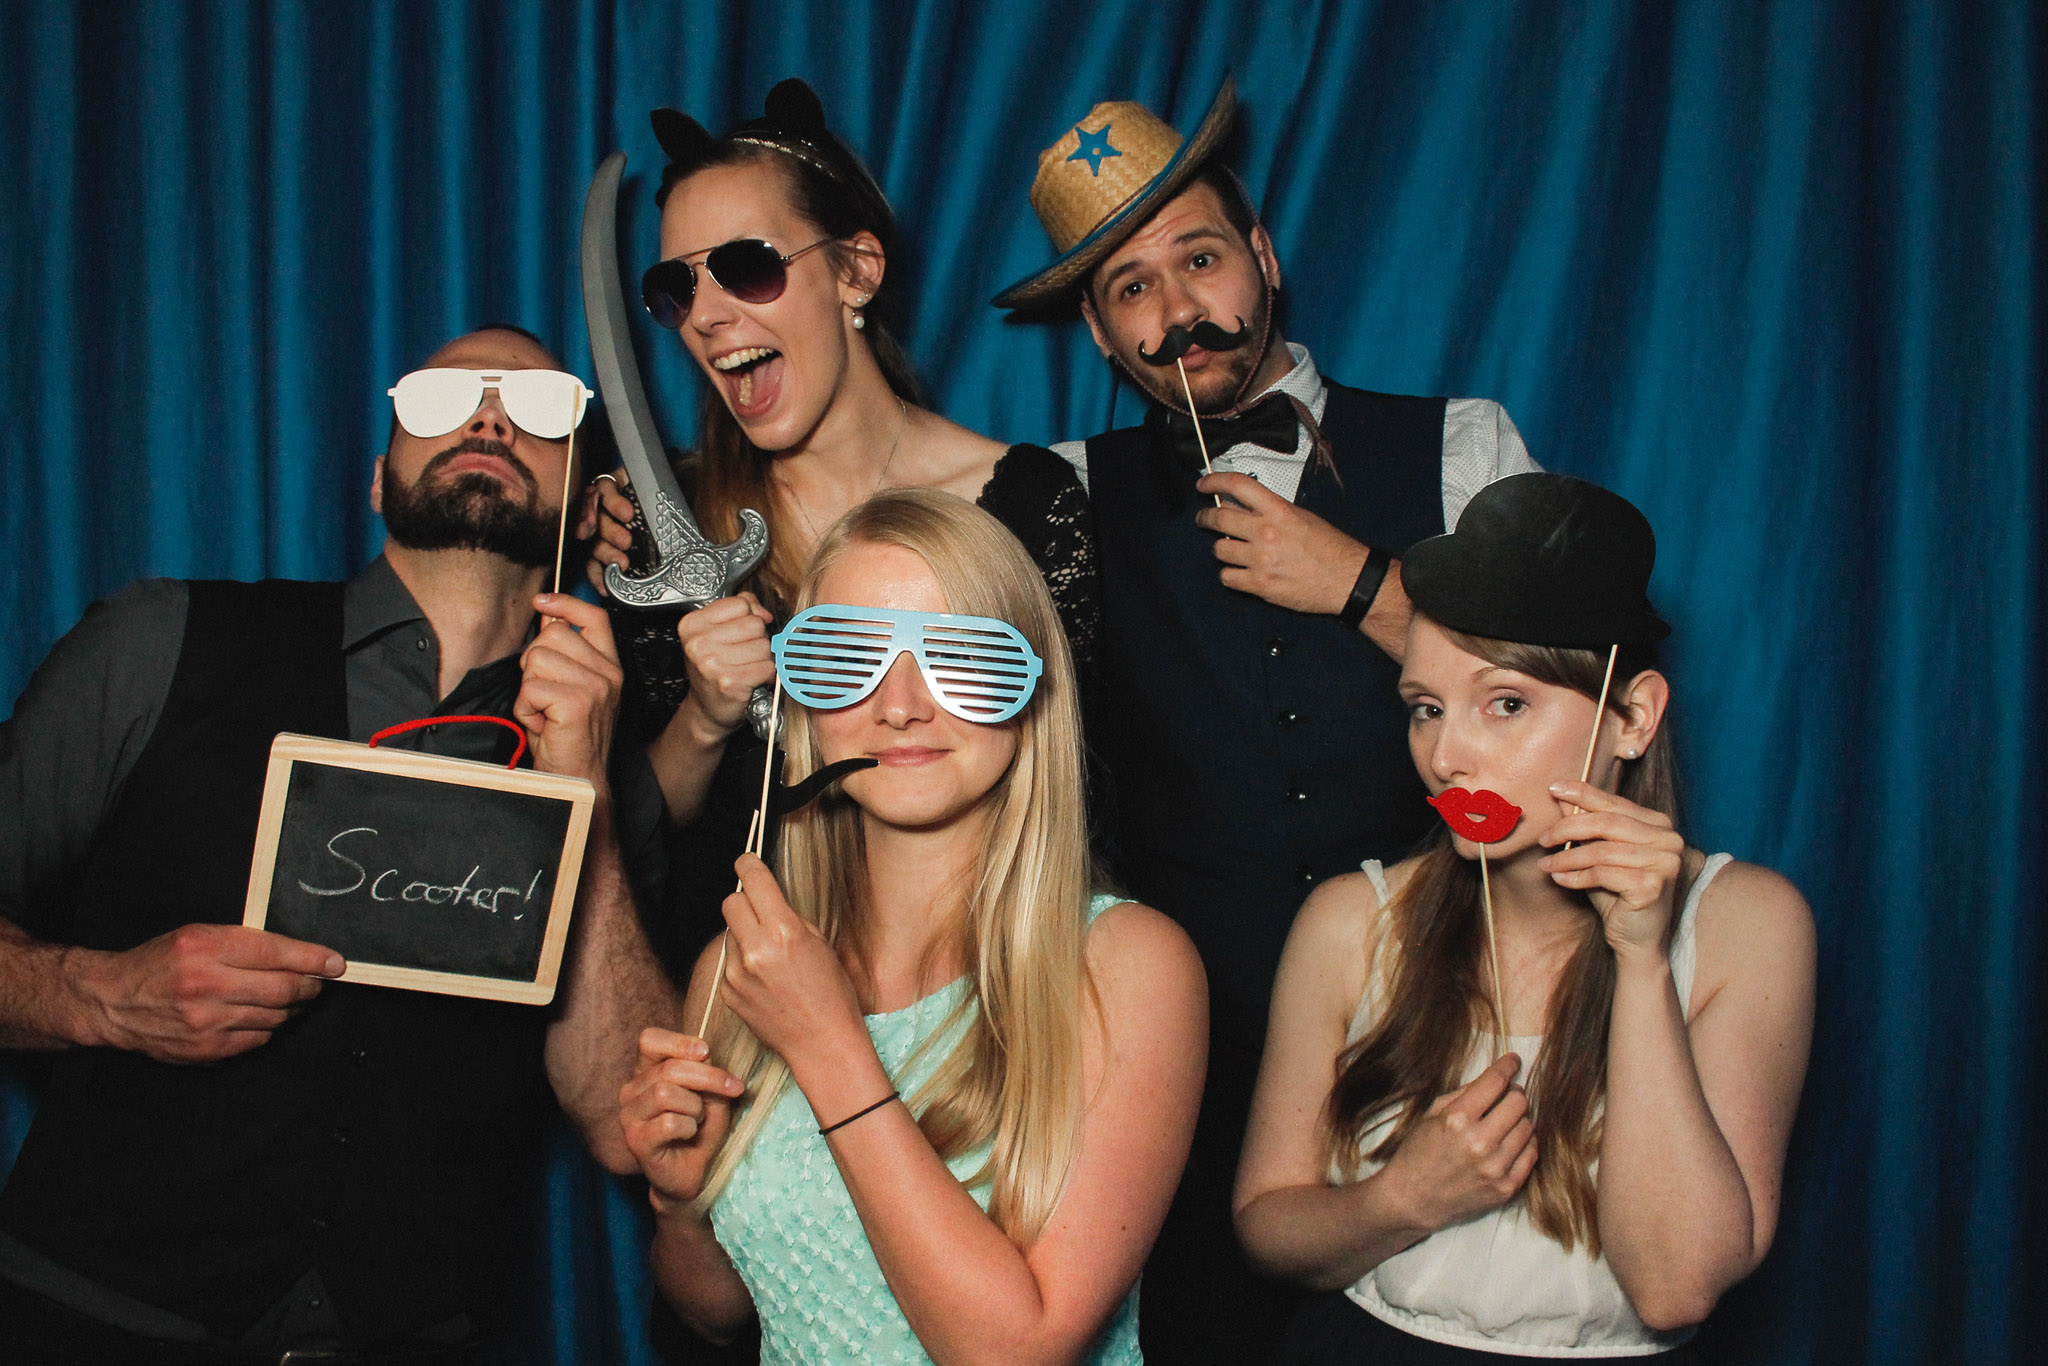 photobooth_hochzeit_wedding_sarah_christoph_001.jpg